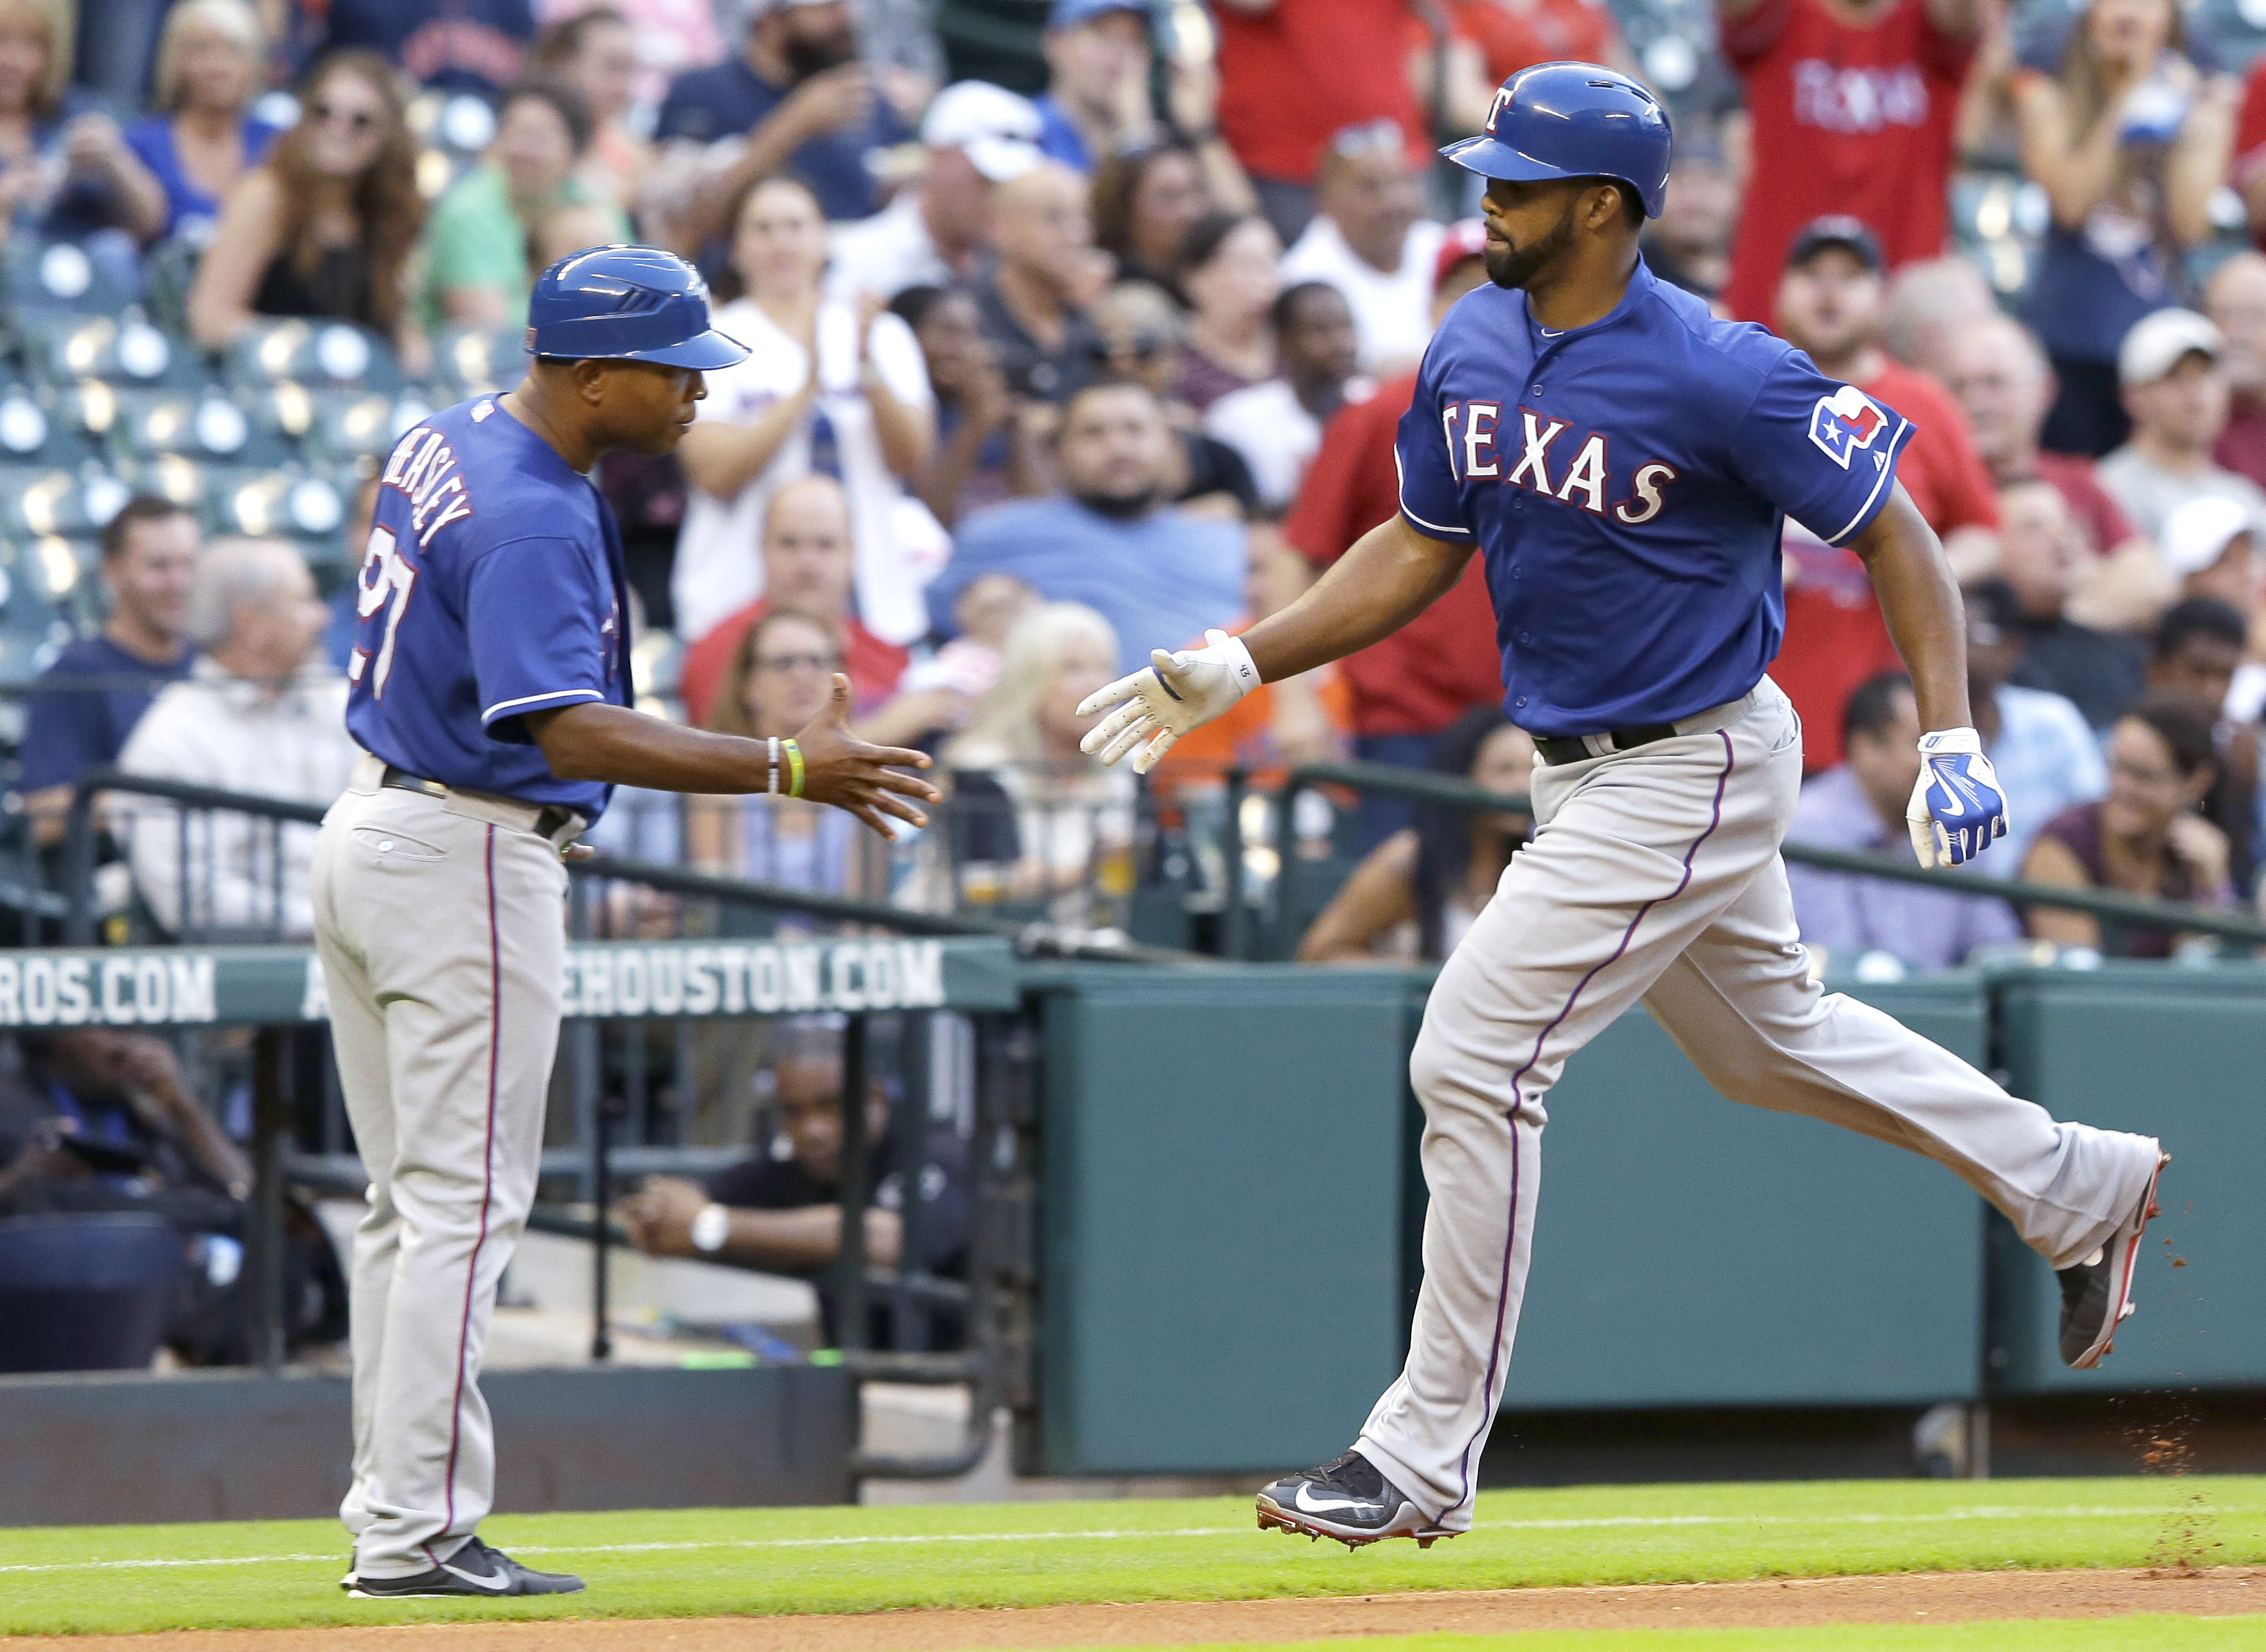 Texas Rangers' Carlos Peguero, right, is congratulated by third base coach Tony Beasley as he rounds the bases on a solo homer against the Houston Astros during the second inning of a baseball game Wednesday, May 6, 2015, in Houston. (AP Photo/Pat Sulliva